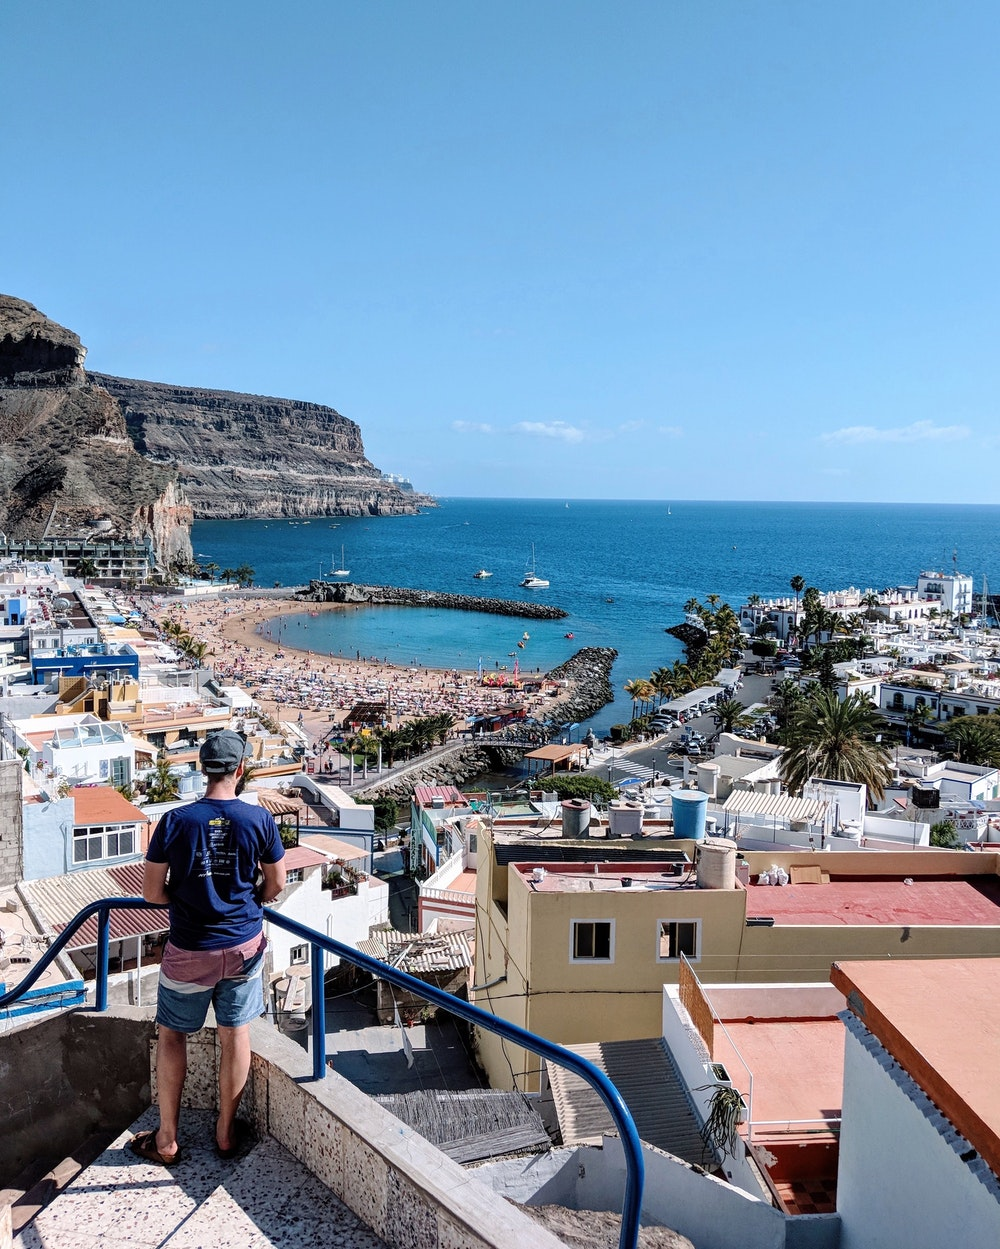 Dan looking at Puerto de Mogan from above